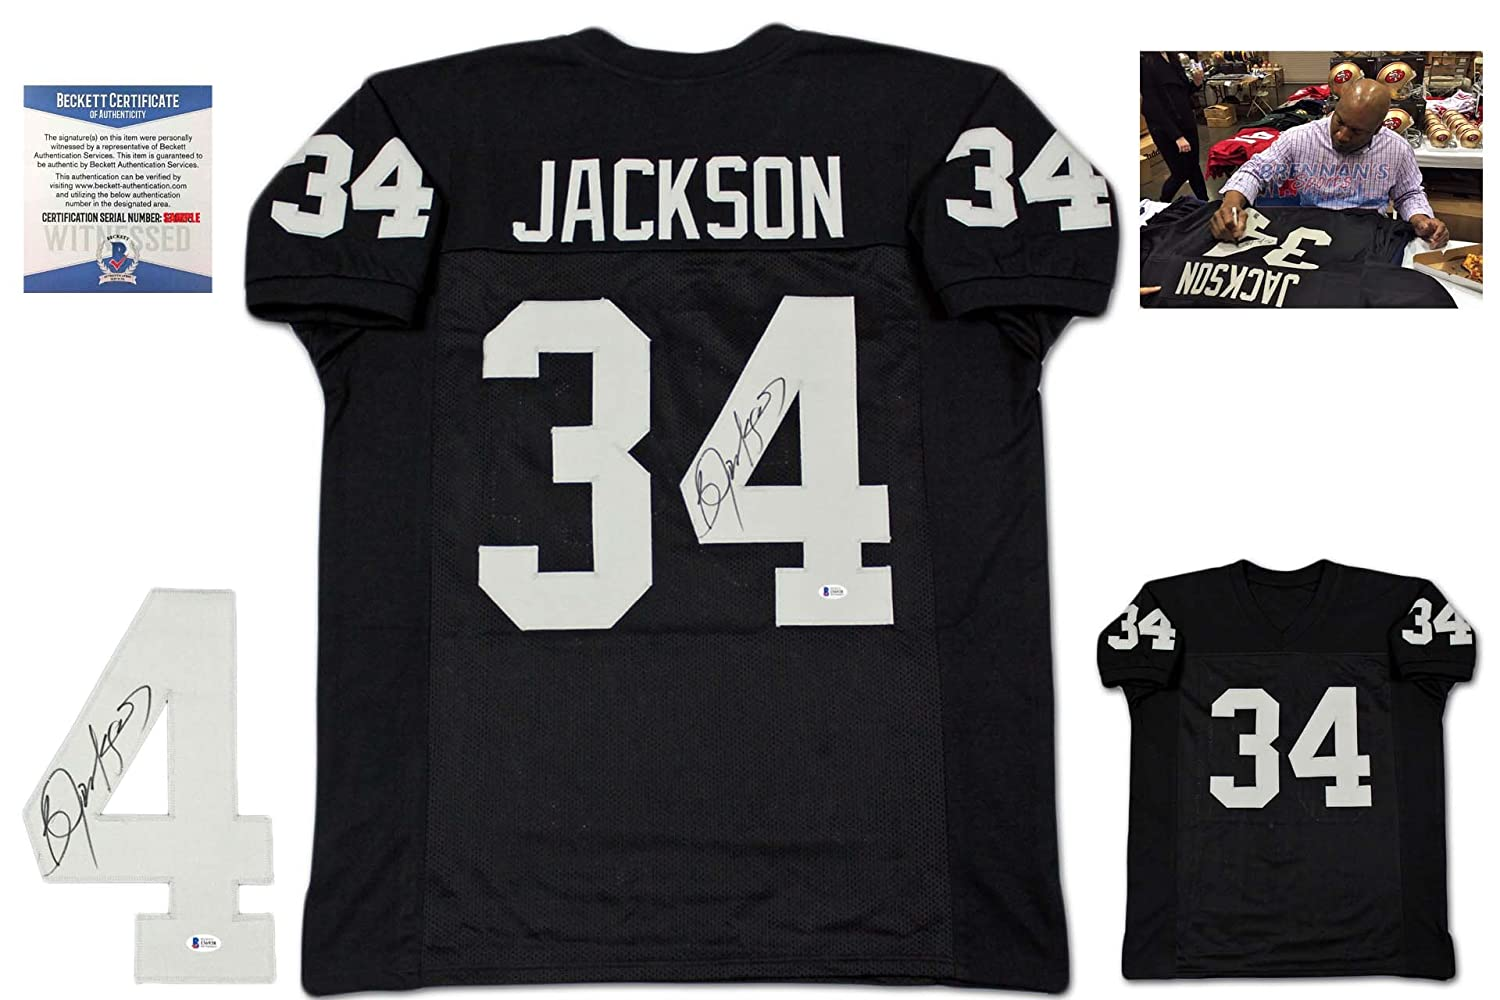 5b9d9a21e50 Bo Jackson Autographed Signed Jersey - Beckett Authentic - Black at  Amazon s Sports Collectibles Store